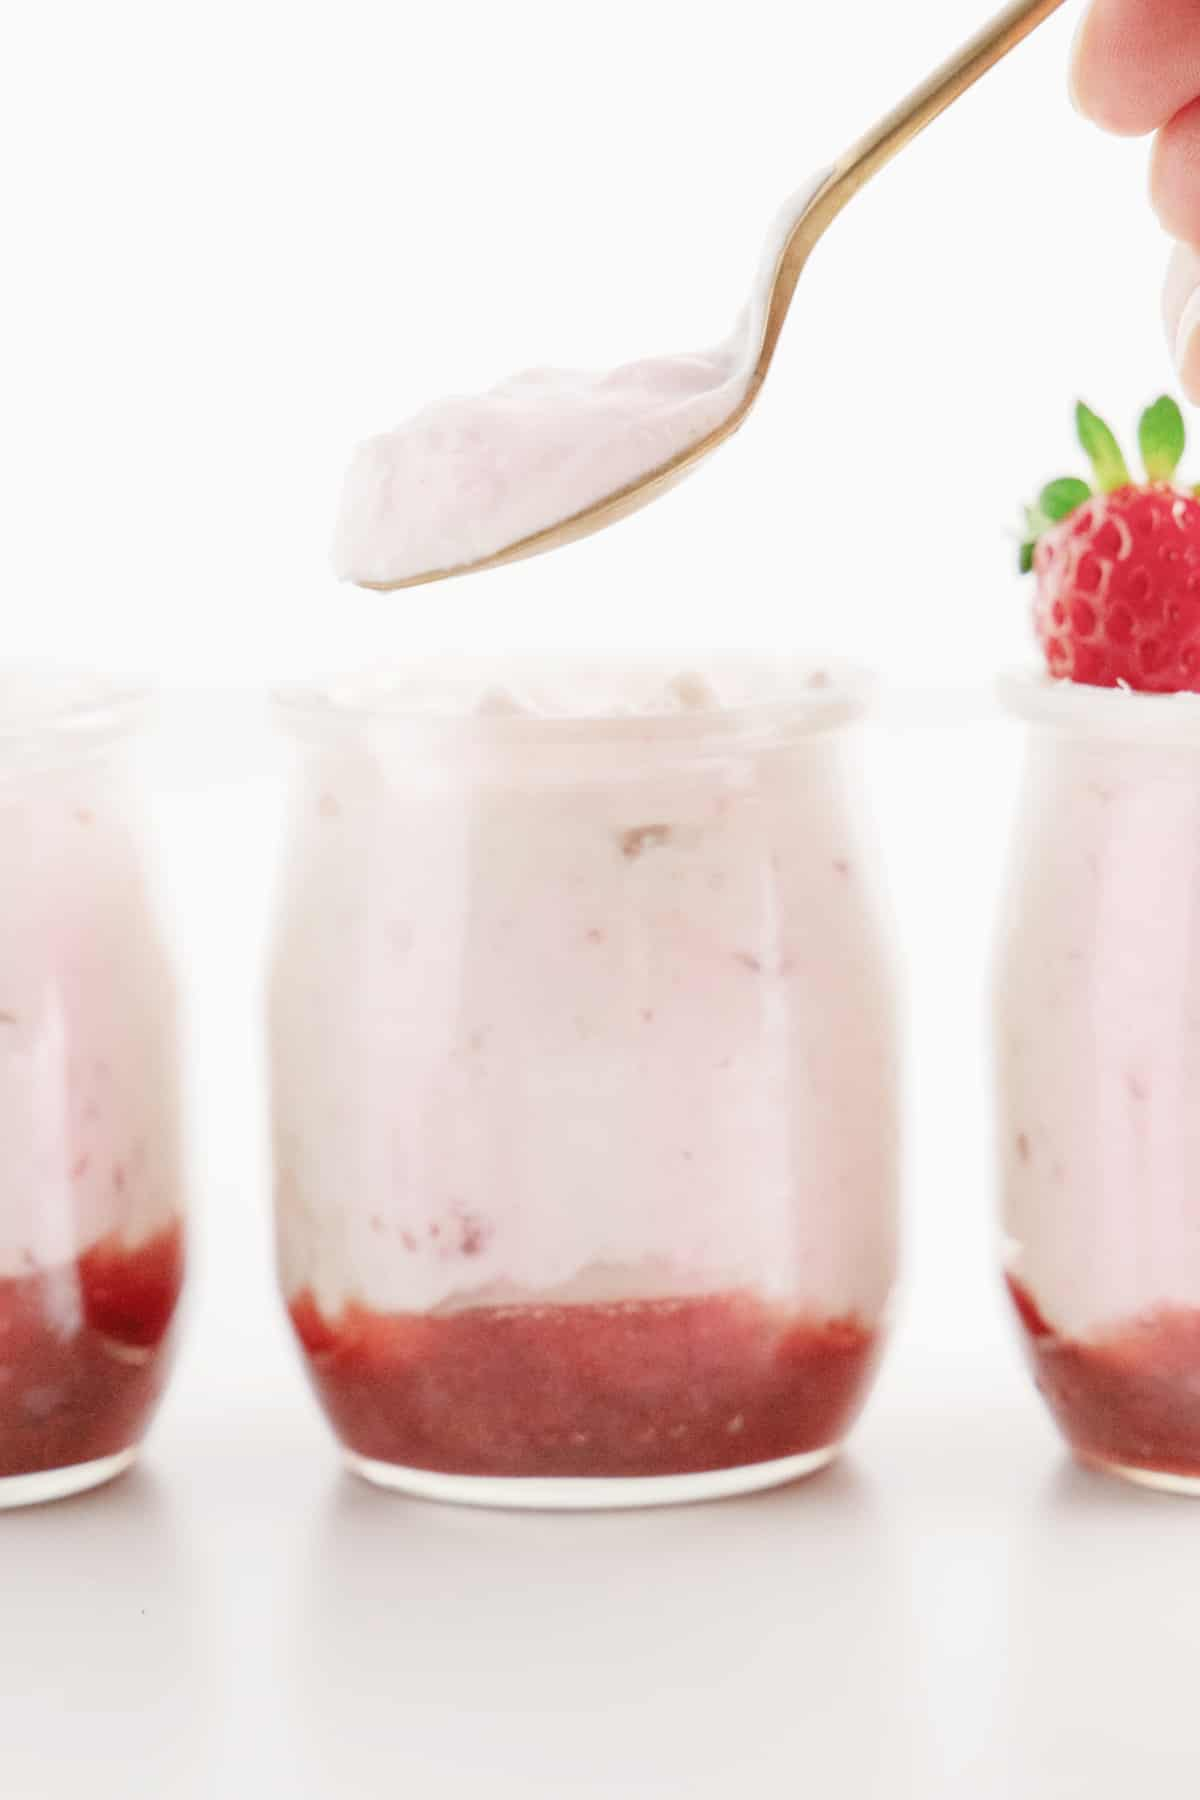 Three jars in a row, spooning mousse out of middle jar.